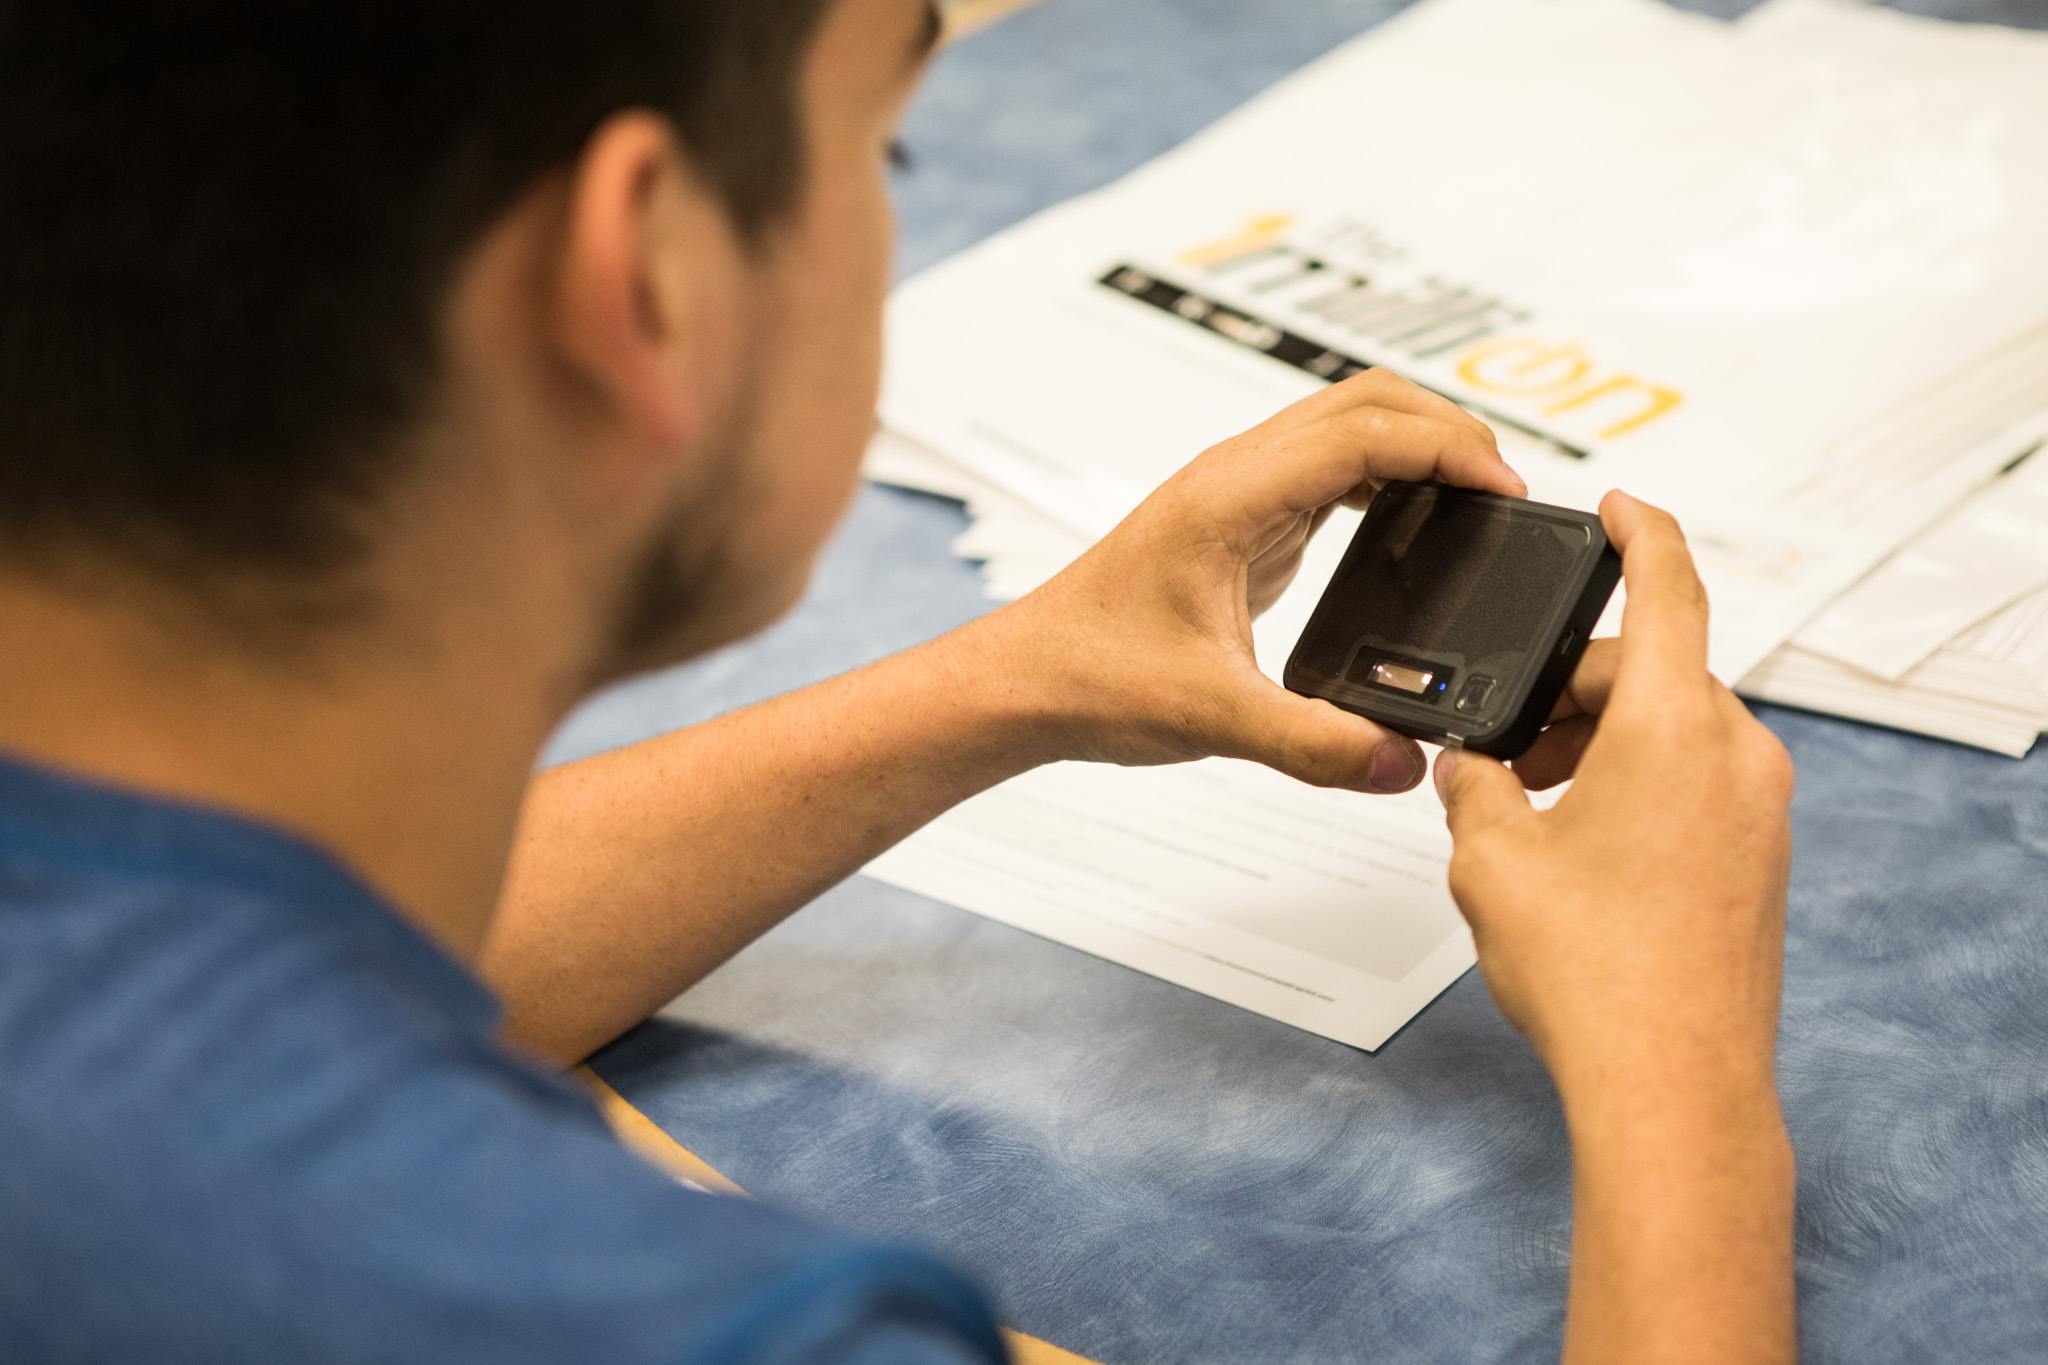 Giovanni Almonte inspects his new personal hotspot, given to him as part of the 1 Million Project.